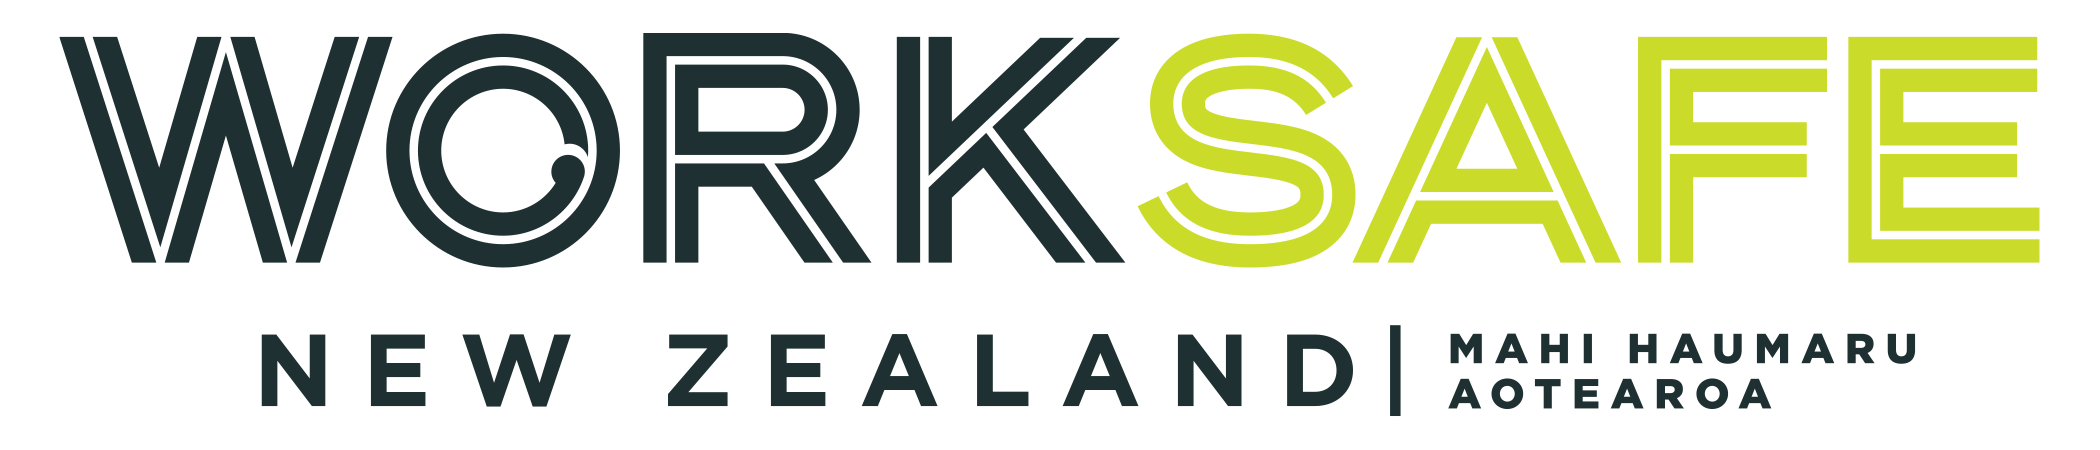 Worksafe-New-Zealand-Logo.png